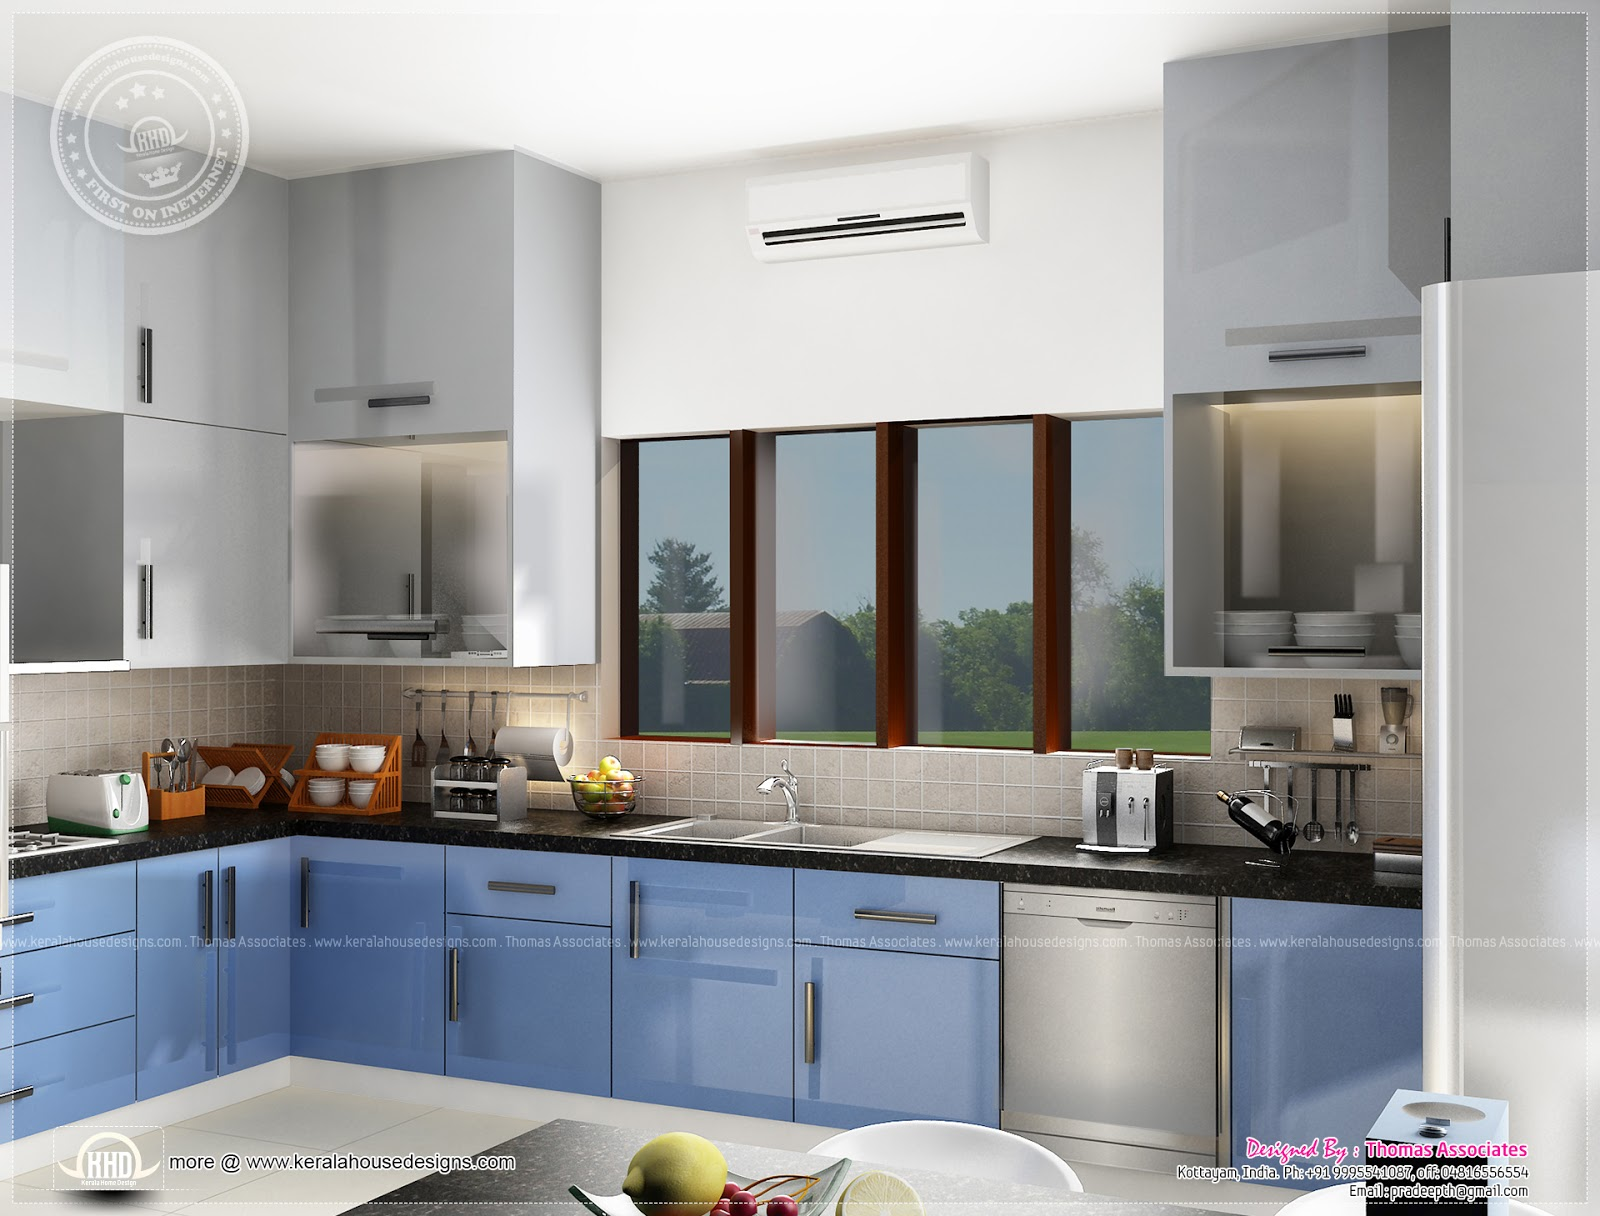 bathroom interior designs kitchen 01 Indian Kitchen Interior